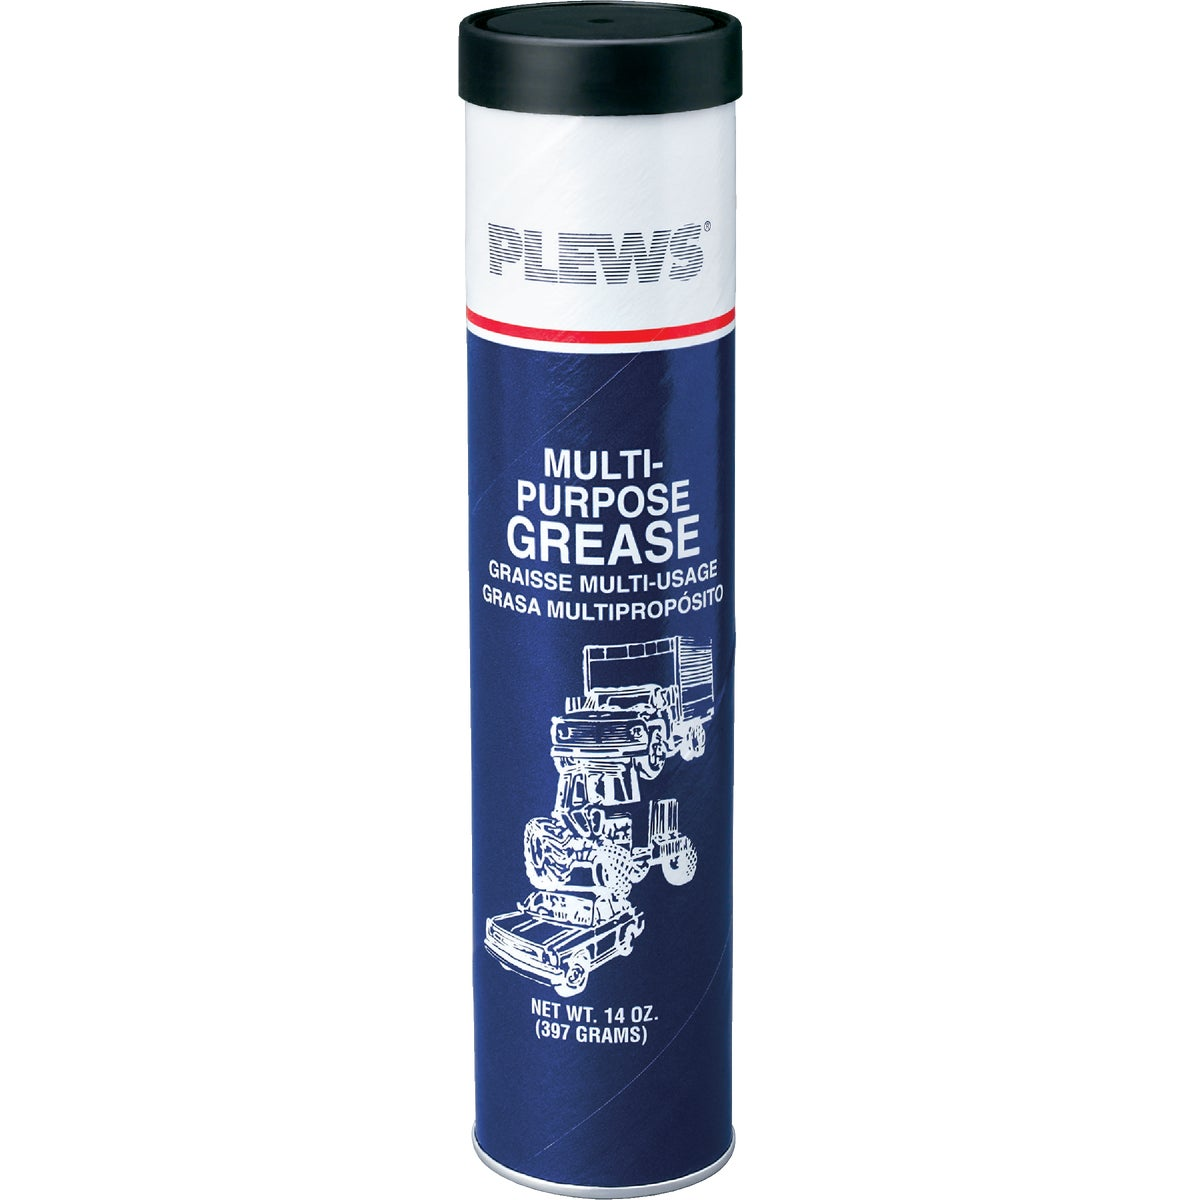 Plews/Lubrimatic ULTRA LUBE MP GREASE 11310